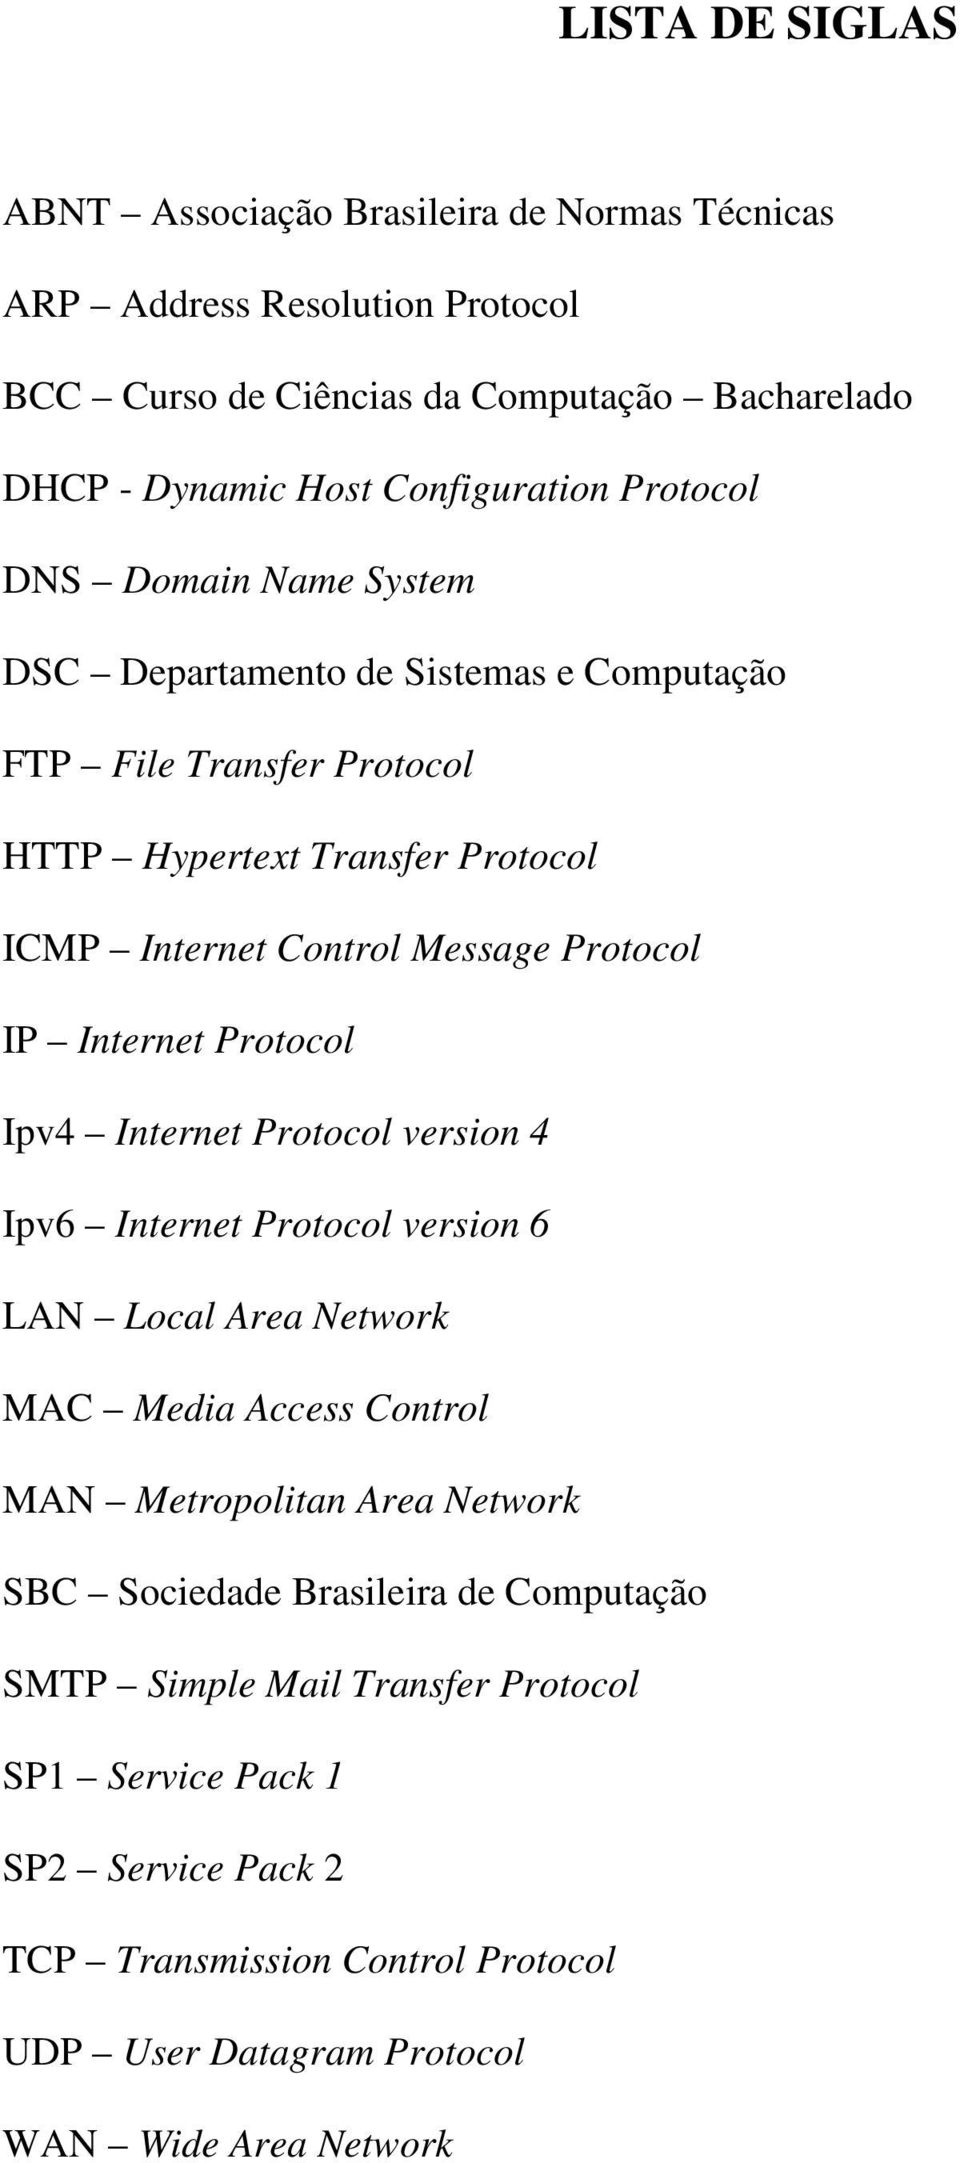 Internet Protocol Ipv4 Internet Protocol version 4 Ipv6 Internet Protocol version 6 LAN Local Area Network MAC Media Access Control MAN Metropolitan Area Network SBC Sociedade